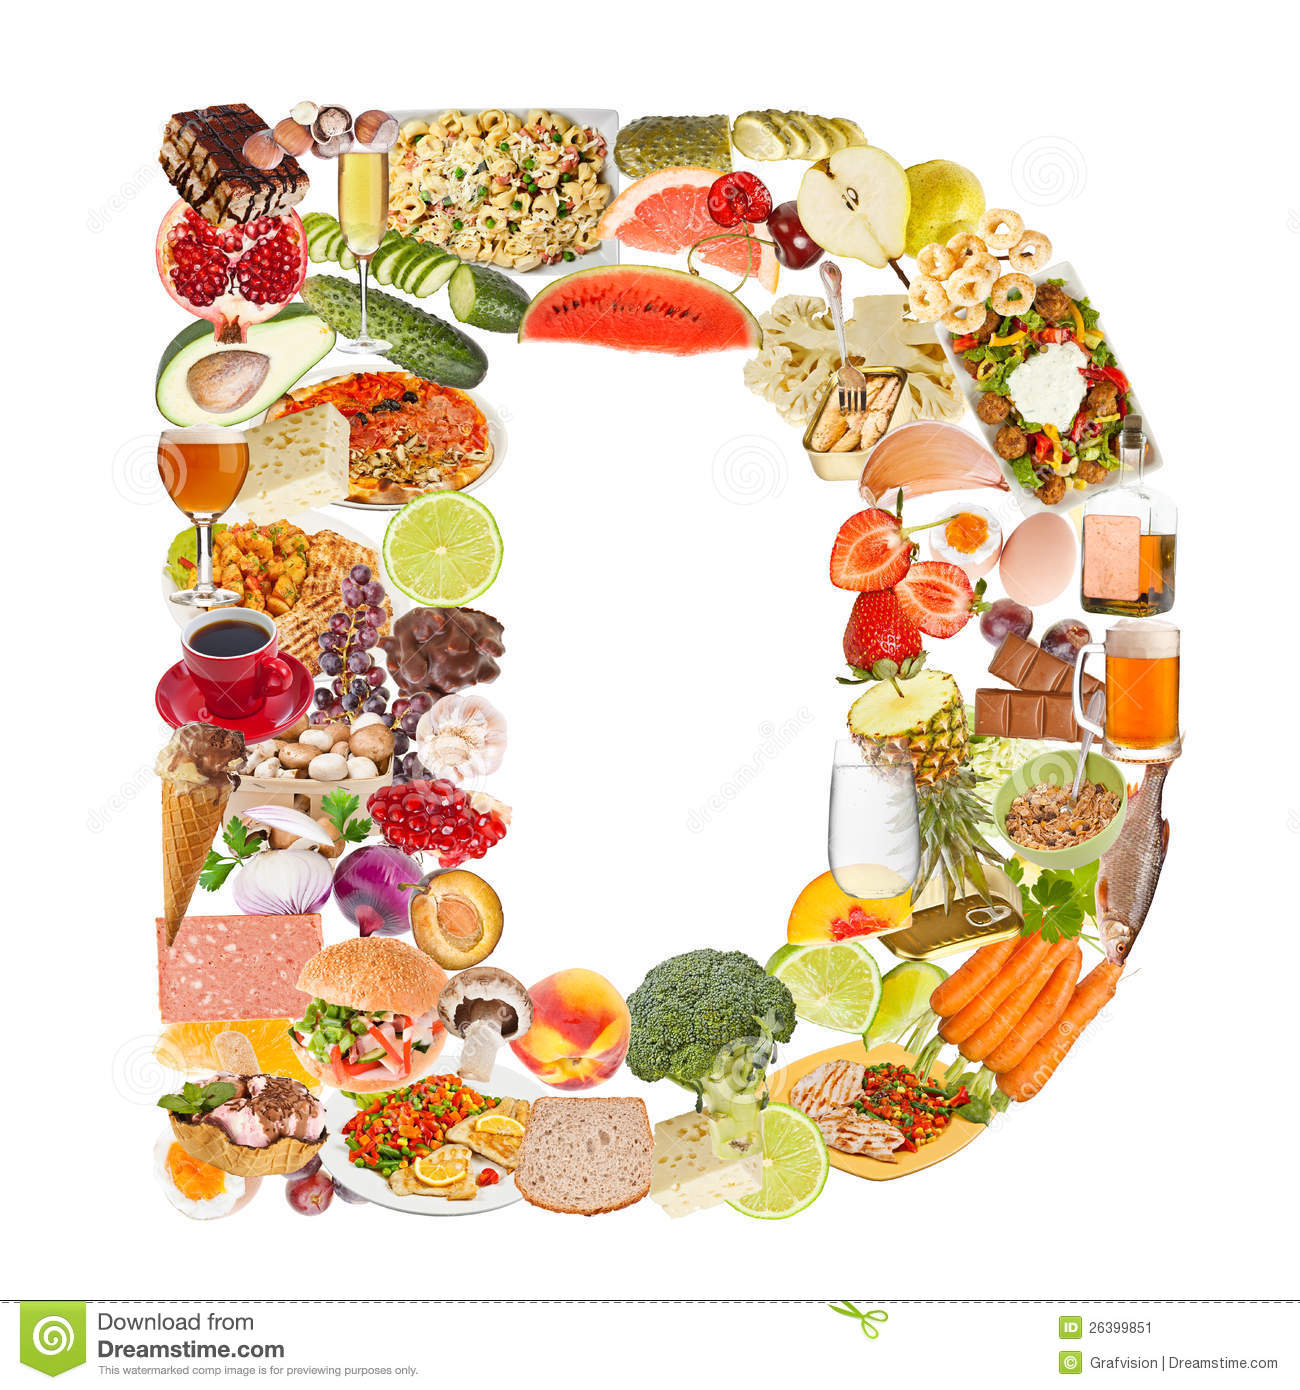 Lettre d faite de nourriture image stock image 26399851 for Comidas con d